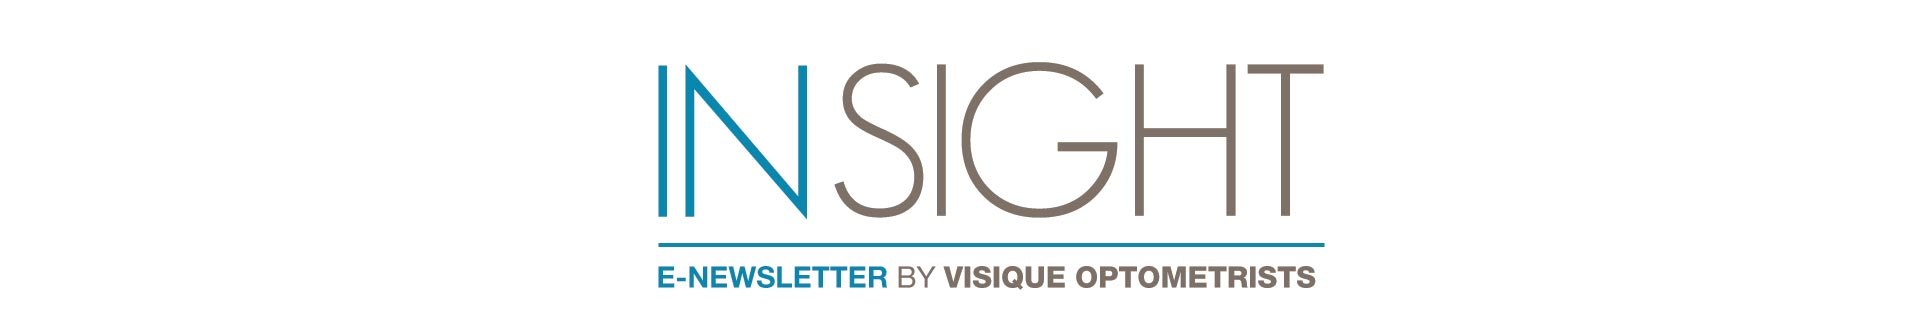 Visique_Optometrists-Newsletter-Header.jpg